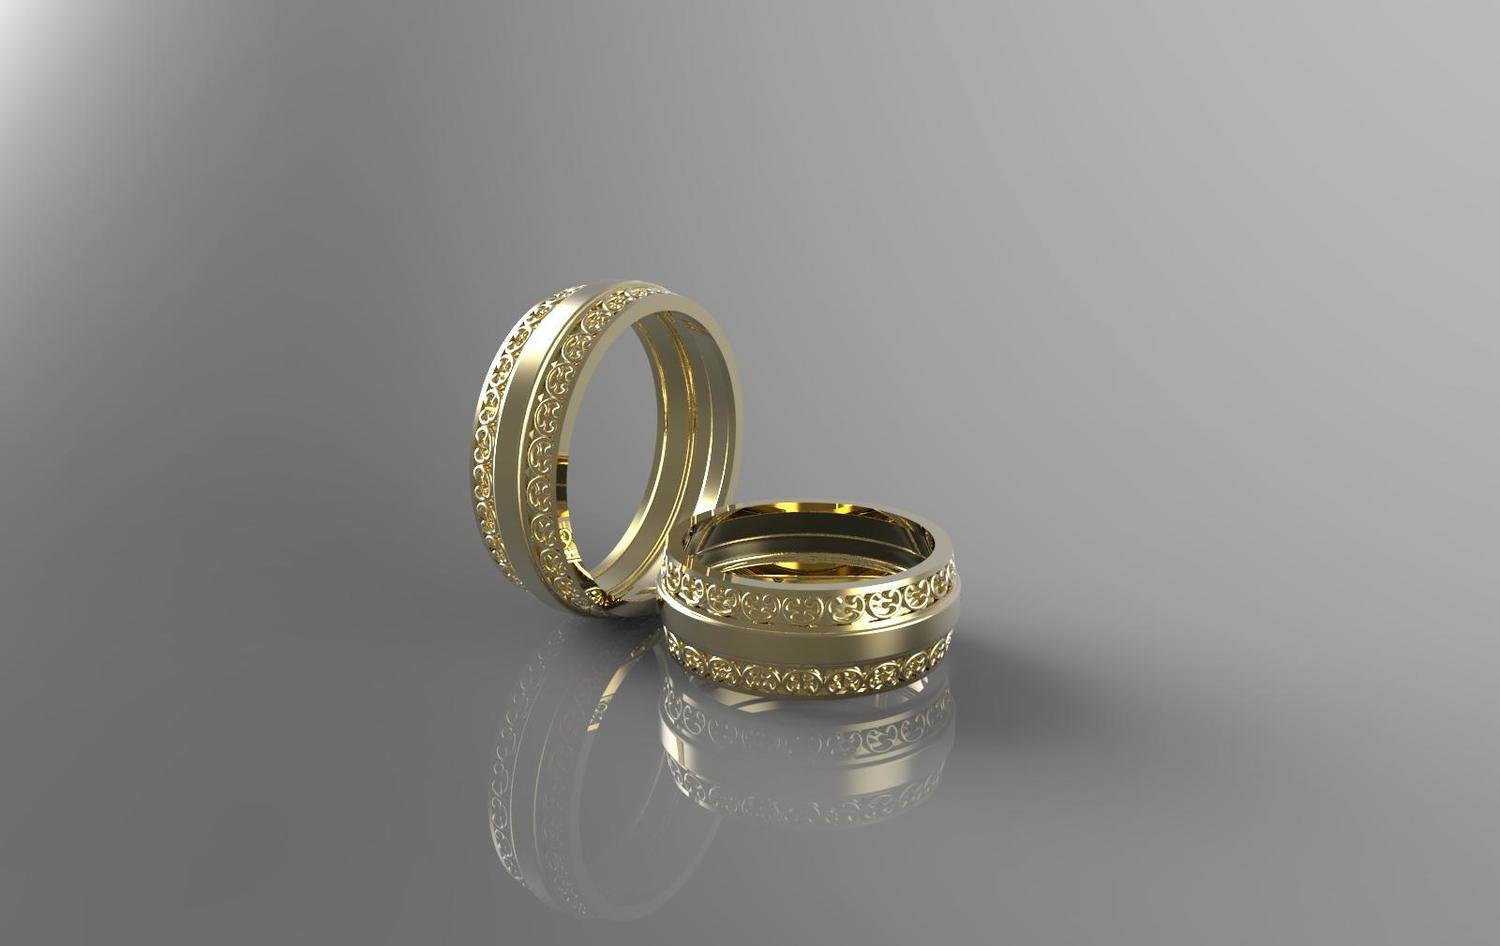 3D CAD Model of Wedding Ring (Size 8.5)